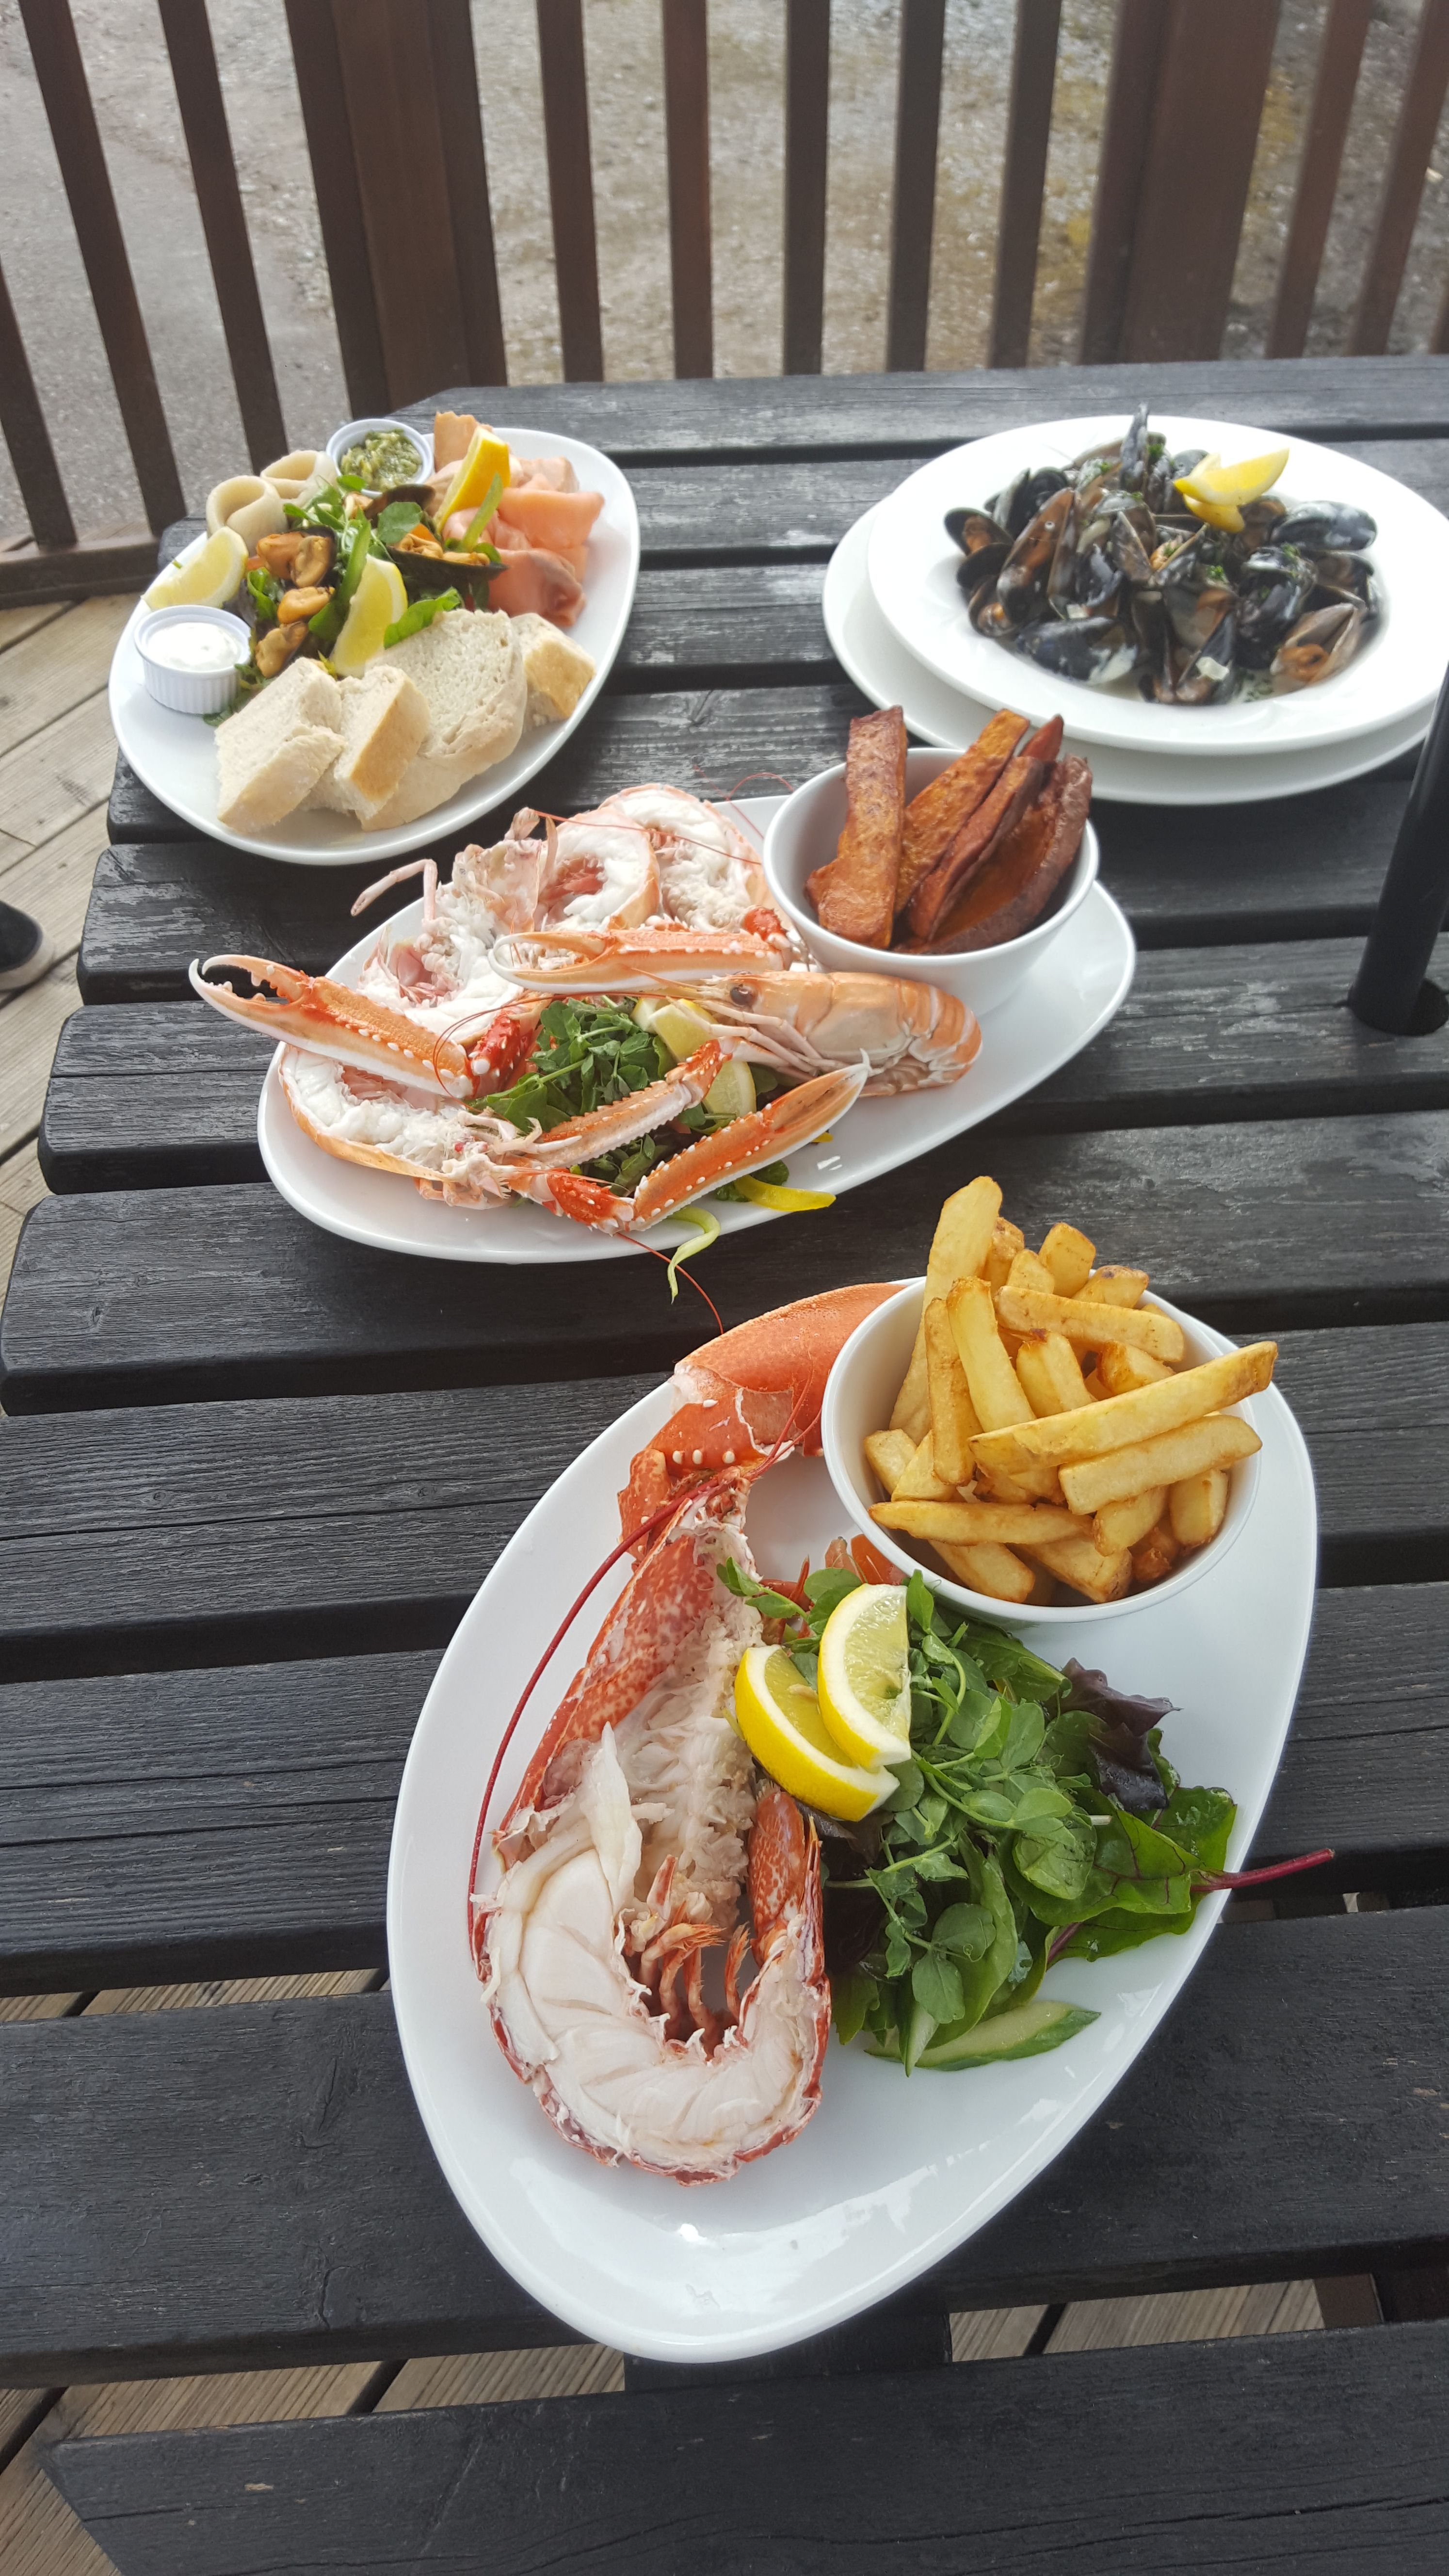 Looking for fresh seafood in Lochaber then why not try Arisaig Hotel. During the Summer months you can enjoy some alfresco dining whilst looking over the stunning Arisaig Bay.